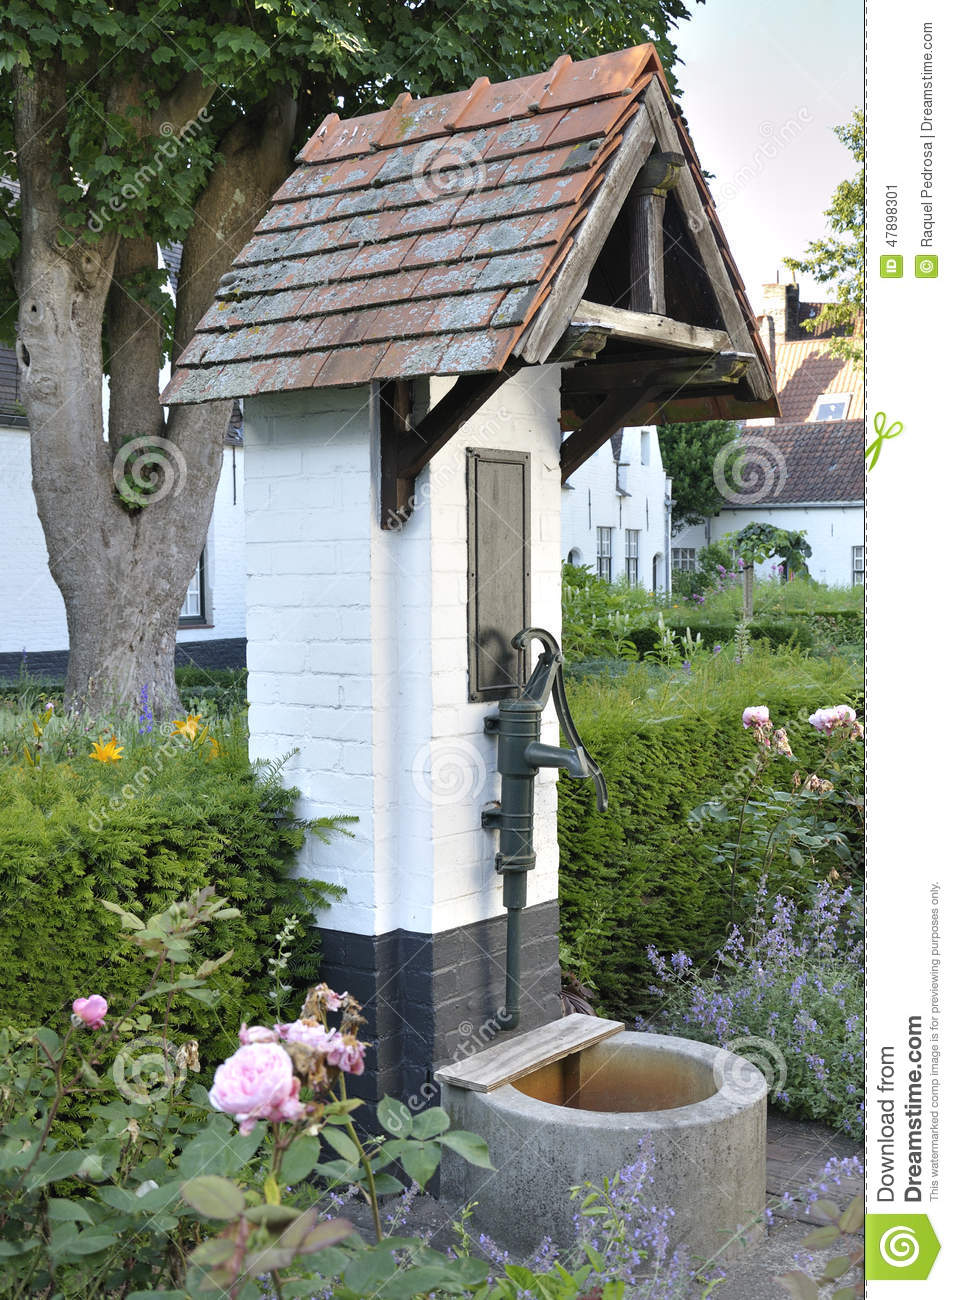 water pump in a garden stock image image of brick bucket 47898301. Black Bedroom Furniture Sets. Home Design Ideas